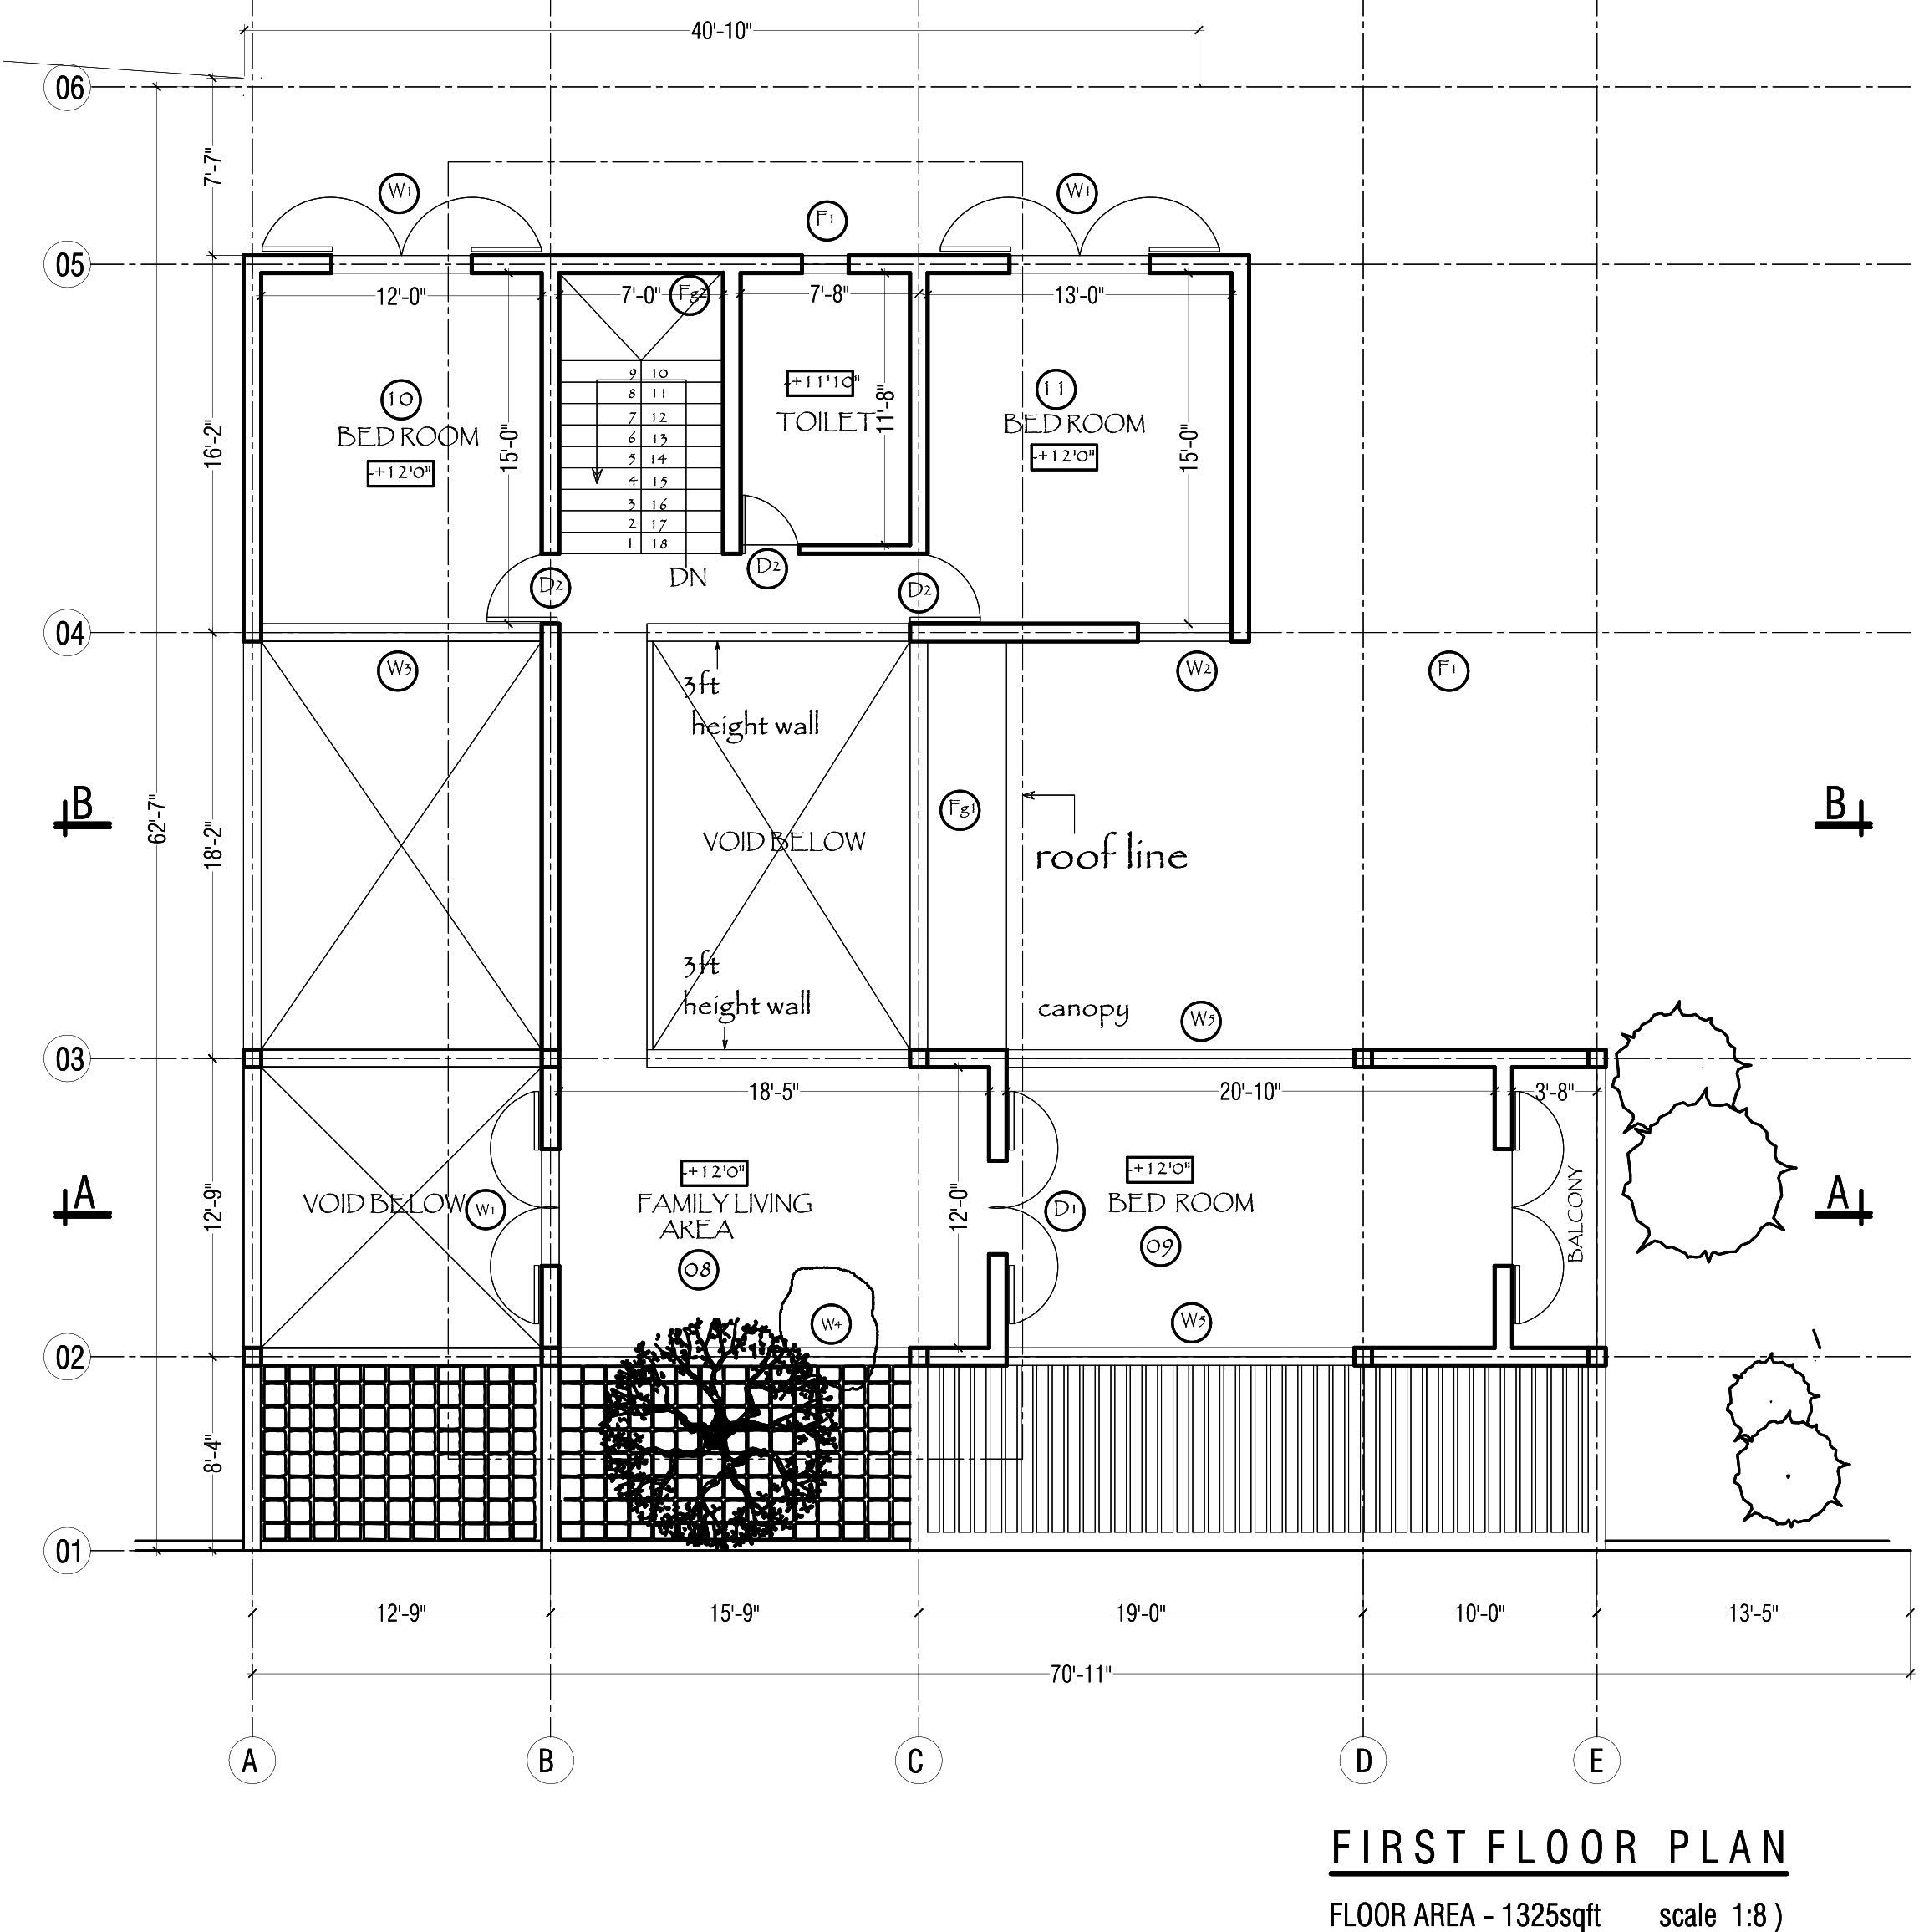 Five bedroom double story beautiful house plan - DWG NET | Cad ... on pool house plans, large one story house plans, pdf house plans, bim house plans, house construction plans, drafting house plans, modern house plans, design house plans, kerala house plans, architecture house plans, engineering house plans, solidworks house plans, drawing house plans, 3 bedroom 2 story house plans, design drawing plans, cop house plans, mandalay house plans, multimedia house plans, art house plans,